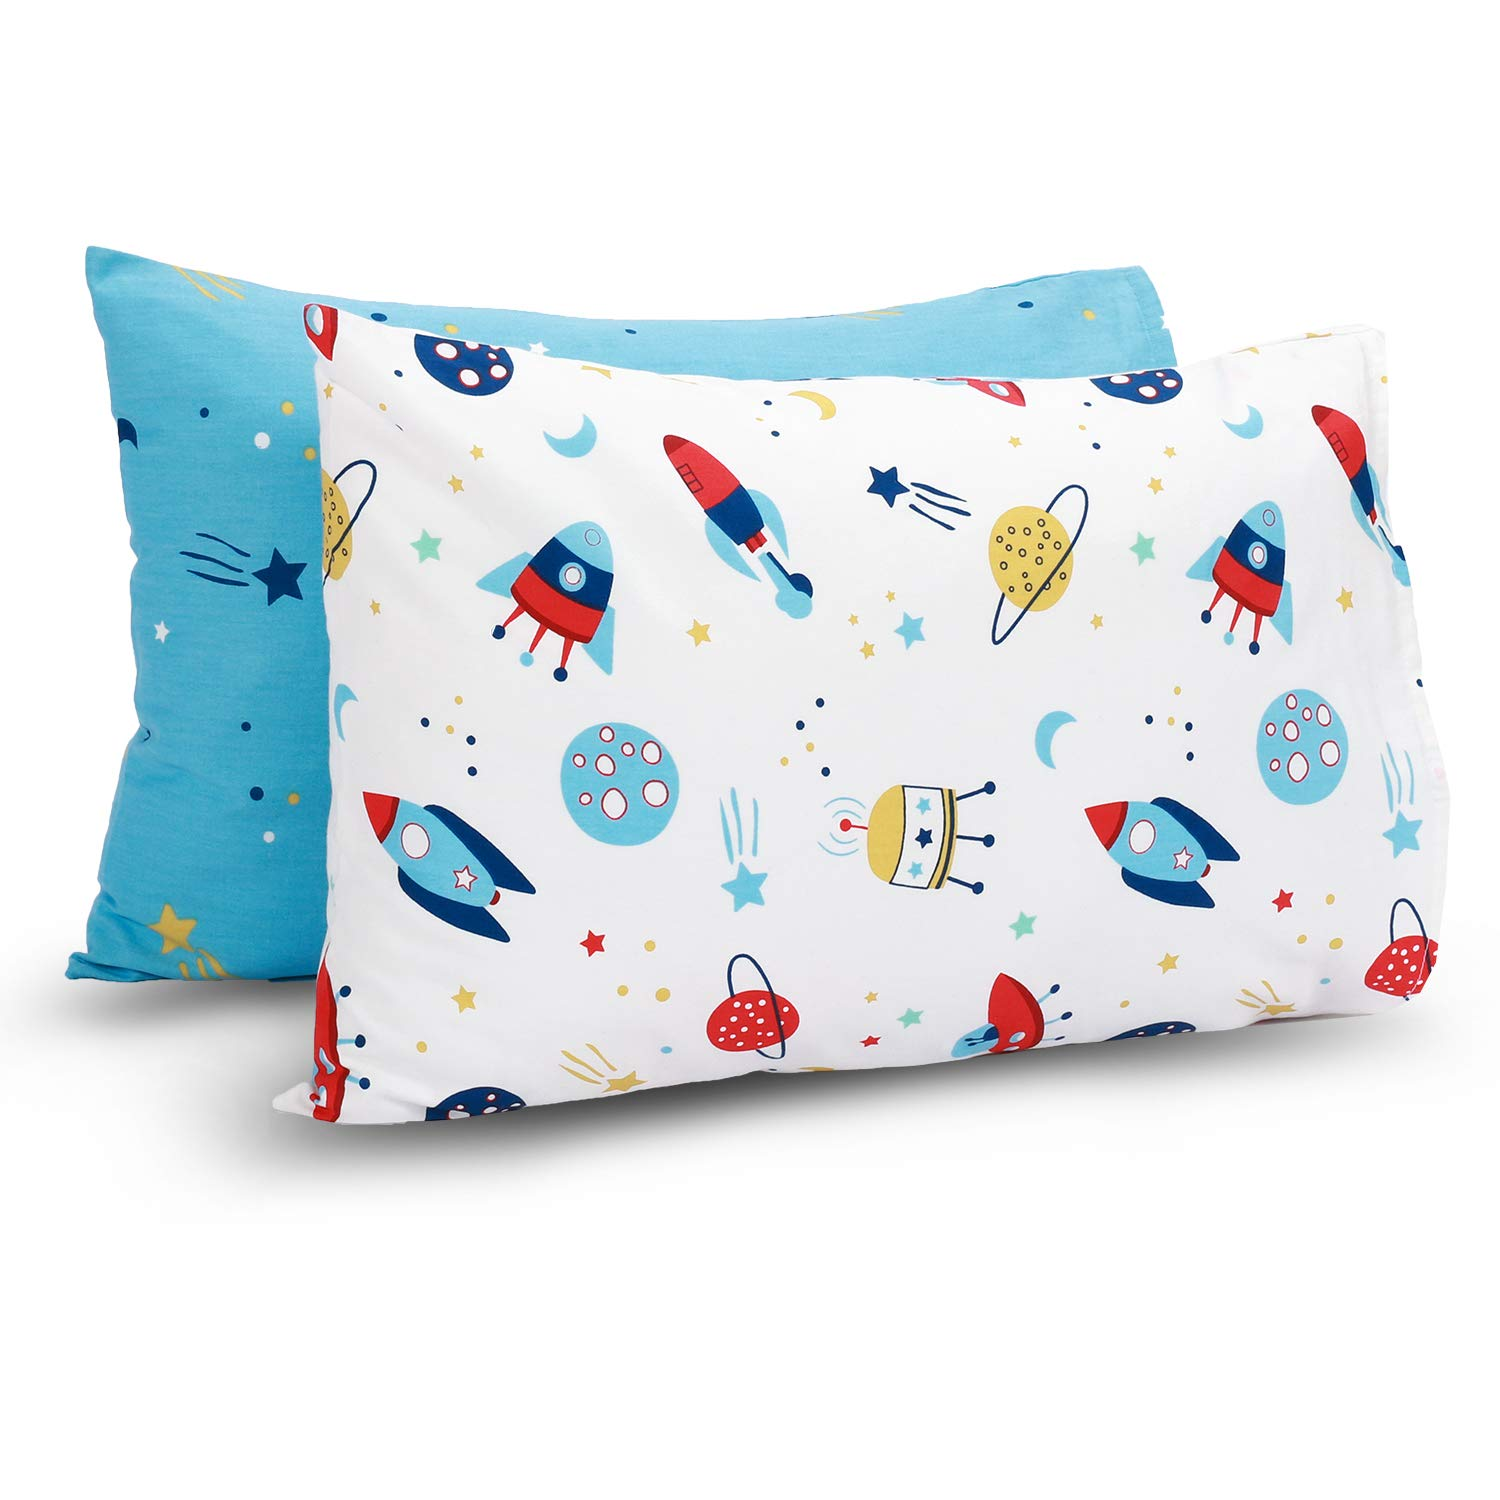 TILLYOU Cotton Collection Max 83% OFF Breathable Outstanding Toddler Pillowcases Set of